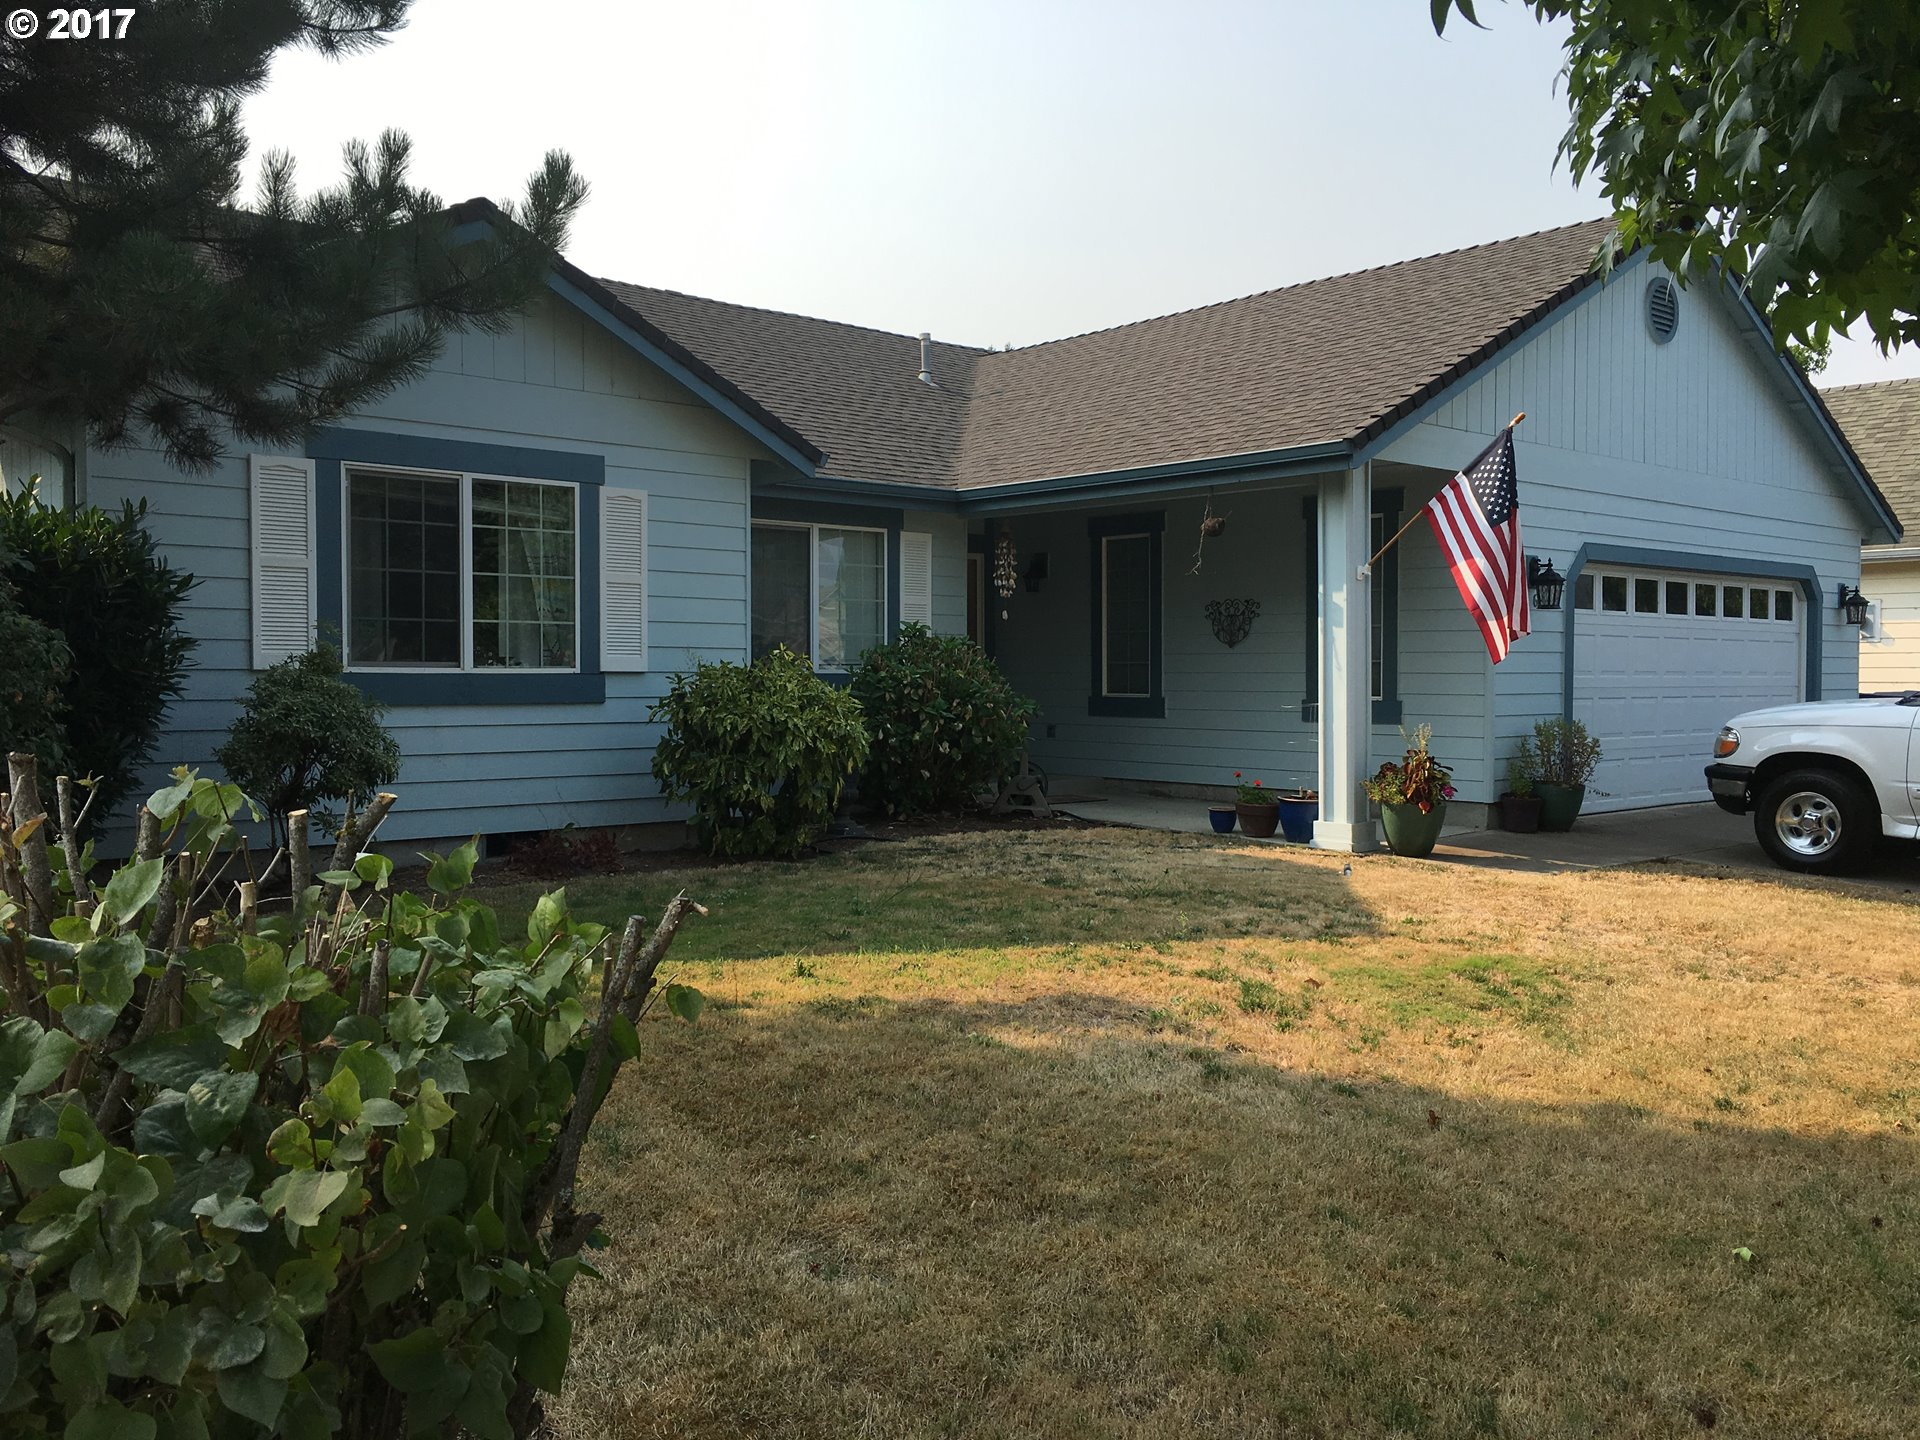 2064 8TH ST, Springfield, OR 97477